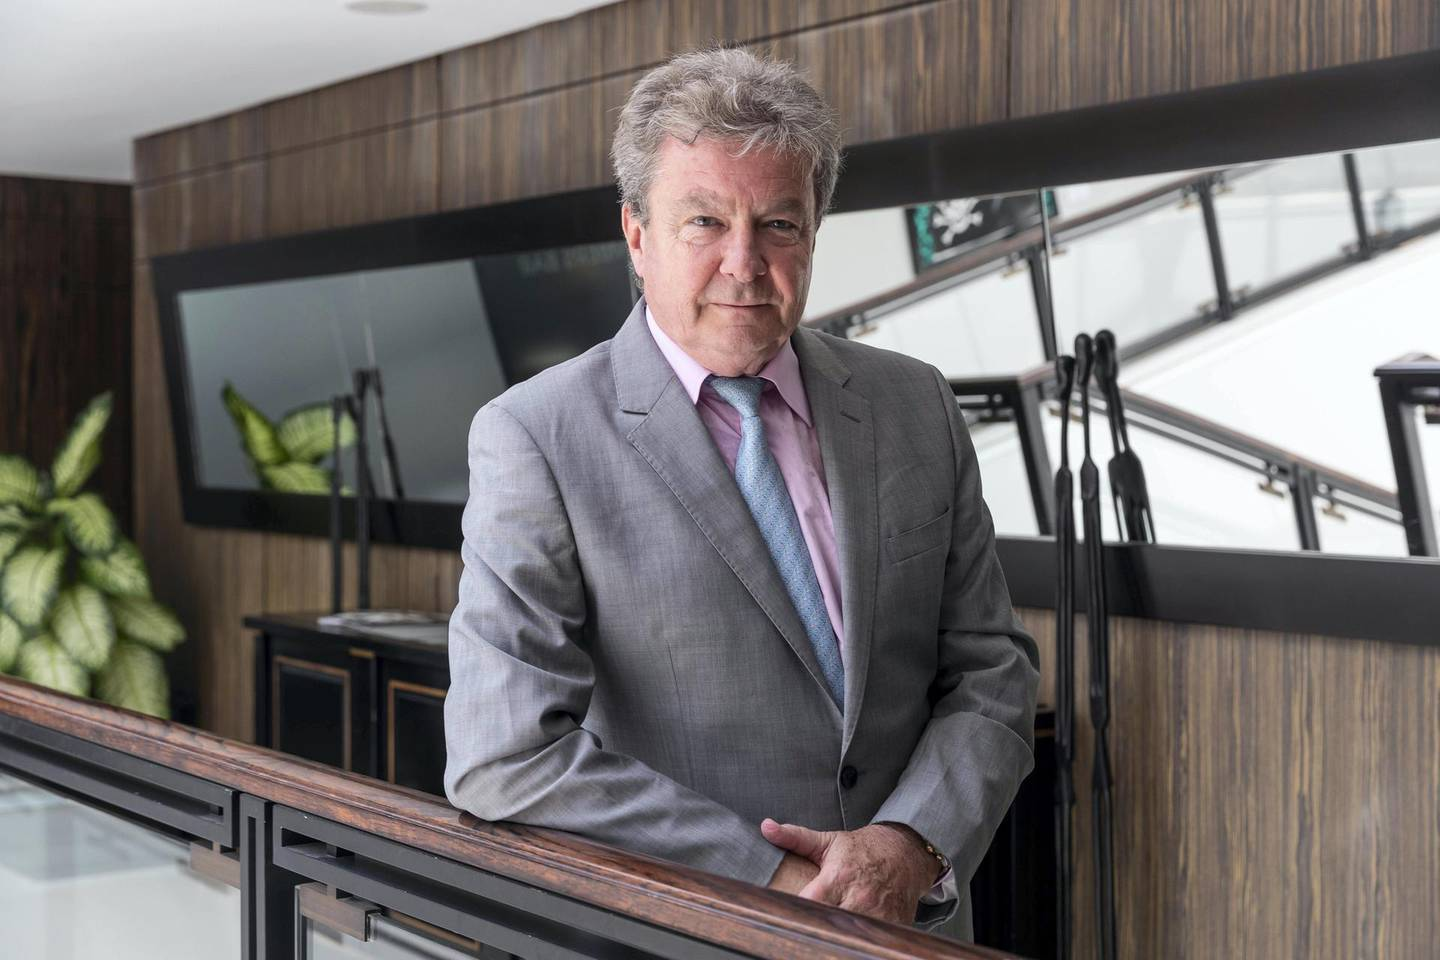 DUBAI, UNITED ARAB EMIRATES. 09 MAY 2019. James Berry, Managing Partner of James Berry & Associates on how to give charity legally in the UAE. (Photo: Antonie Robertson/The National) Journalist: Nada al Sawy. Section: Business.